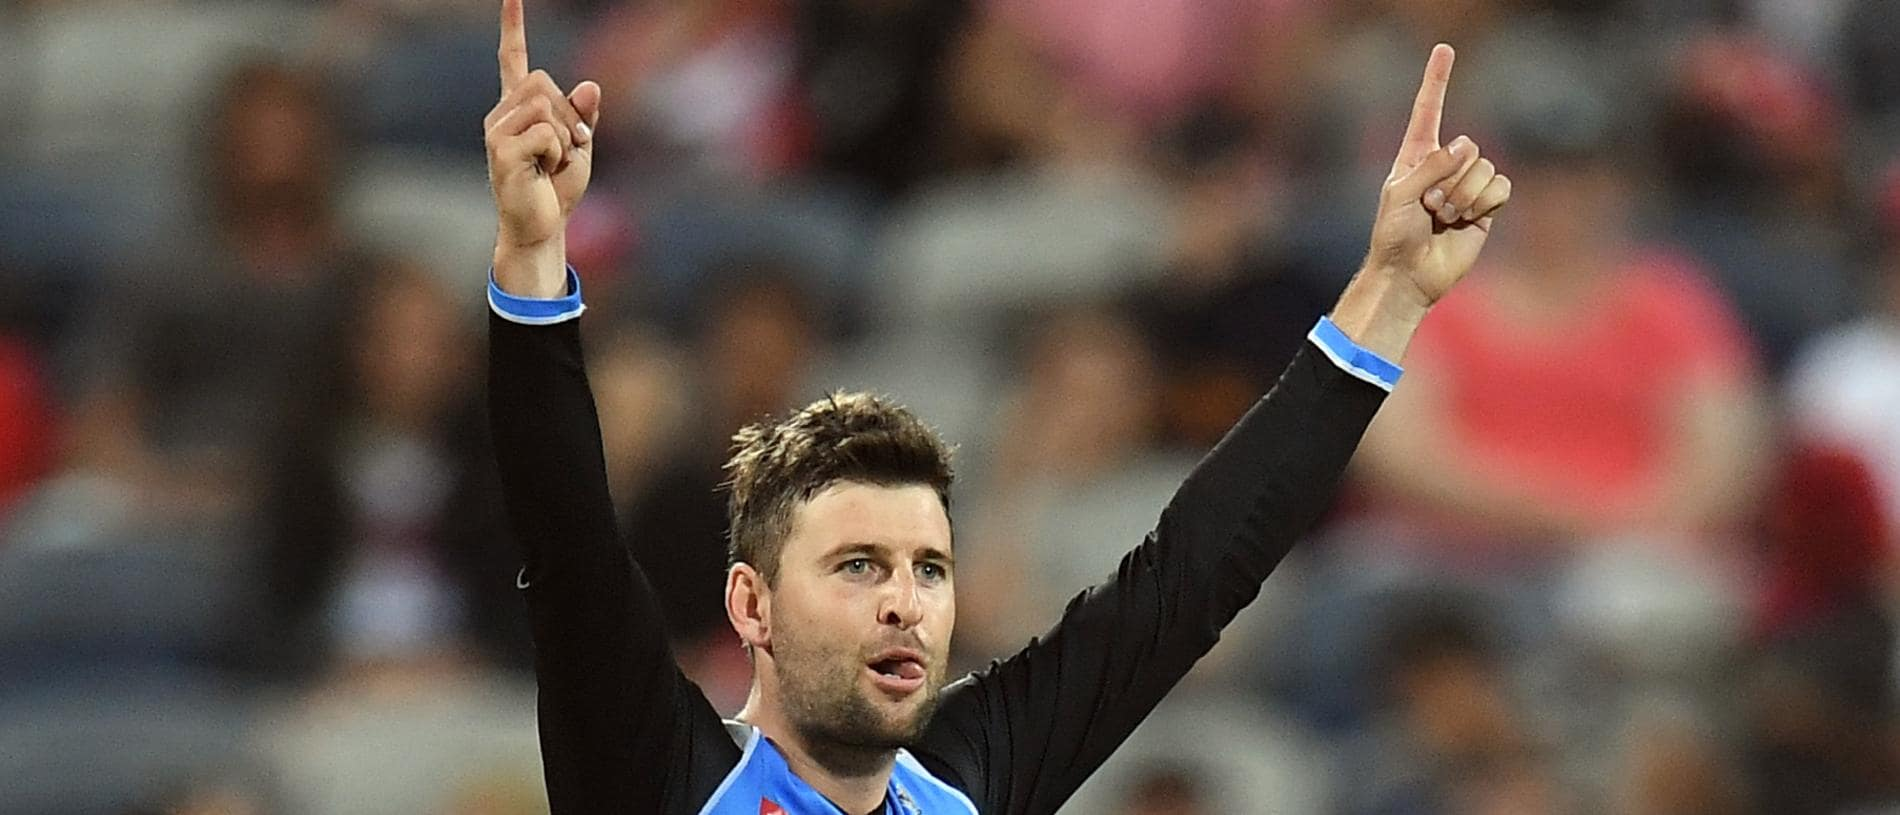 Liam O'Connor of the Strikers reacts after dismissing Tom Cooper of the Renegades during the Big Bash League (BBL) match between Melbourne Renegades and the Adelaide Strikers at GMHBA Stadium in Melbourne, Thursday, January 3, 2019. (AAP Image/Julian Smith) NO ARCHIVING, EDITORIAL USE ONLY, IMAGES TO BE USED FOR NEWS REPORTING PURPOSES ONLY, NO COMMERCIAL USE WHATSOEVER, NO USE IN BOOKS WITHOUT PRIOR WRITTEN CONSENT FROM AAP